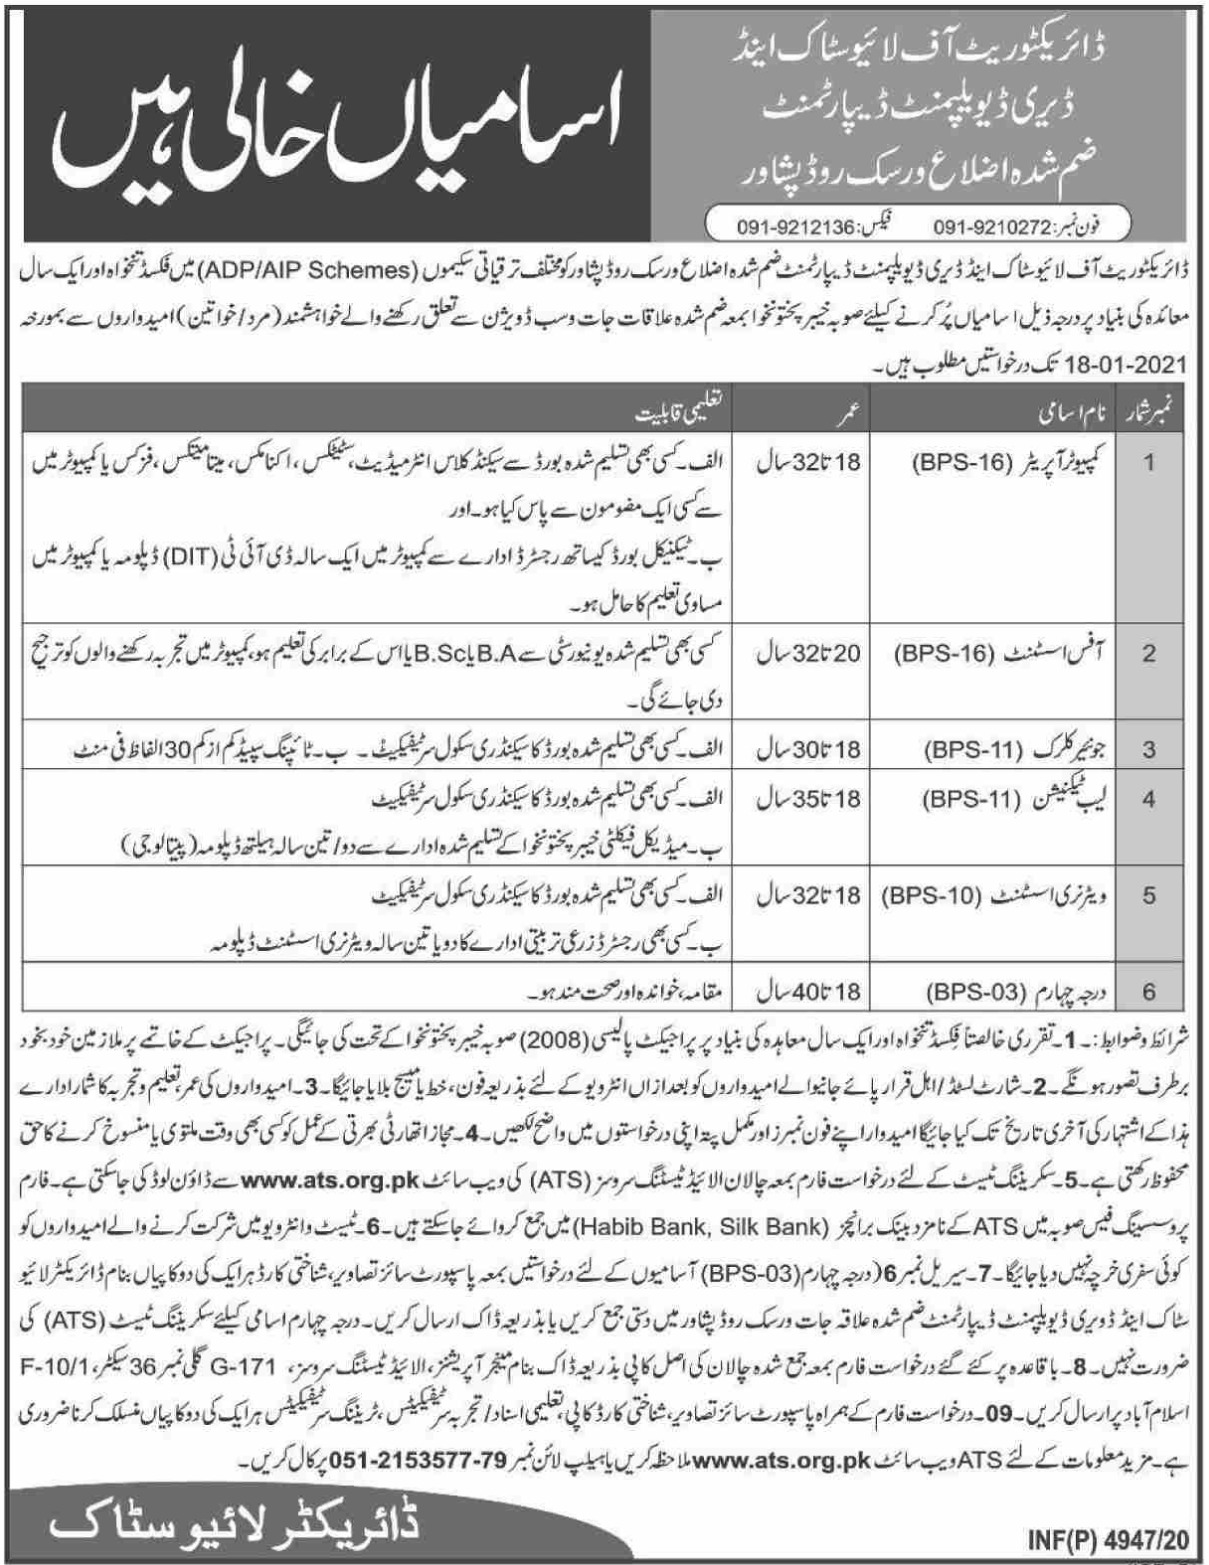 Livestock & Dairy Development Department Peshawar ATS Jobs December 2020